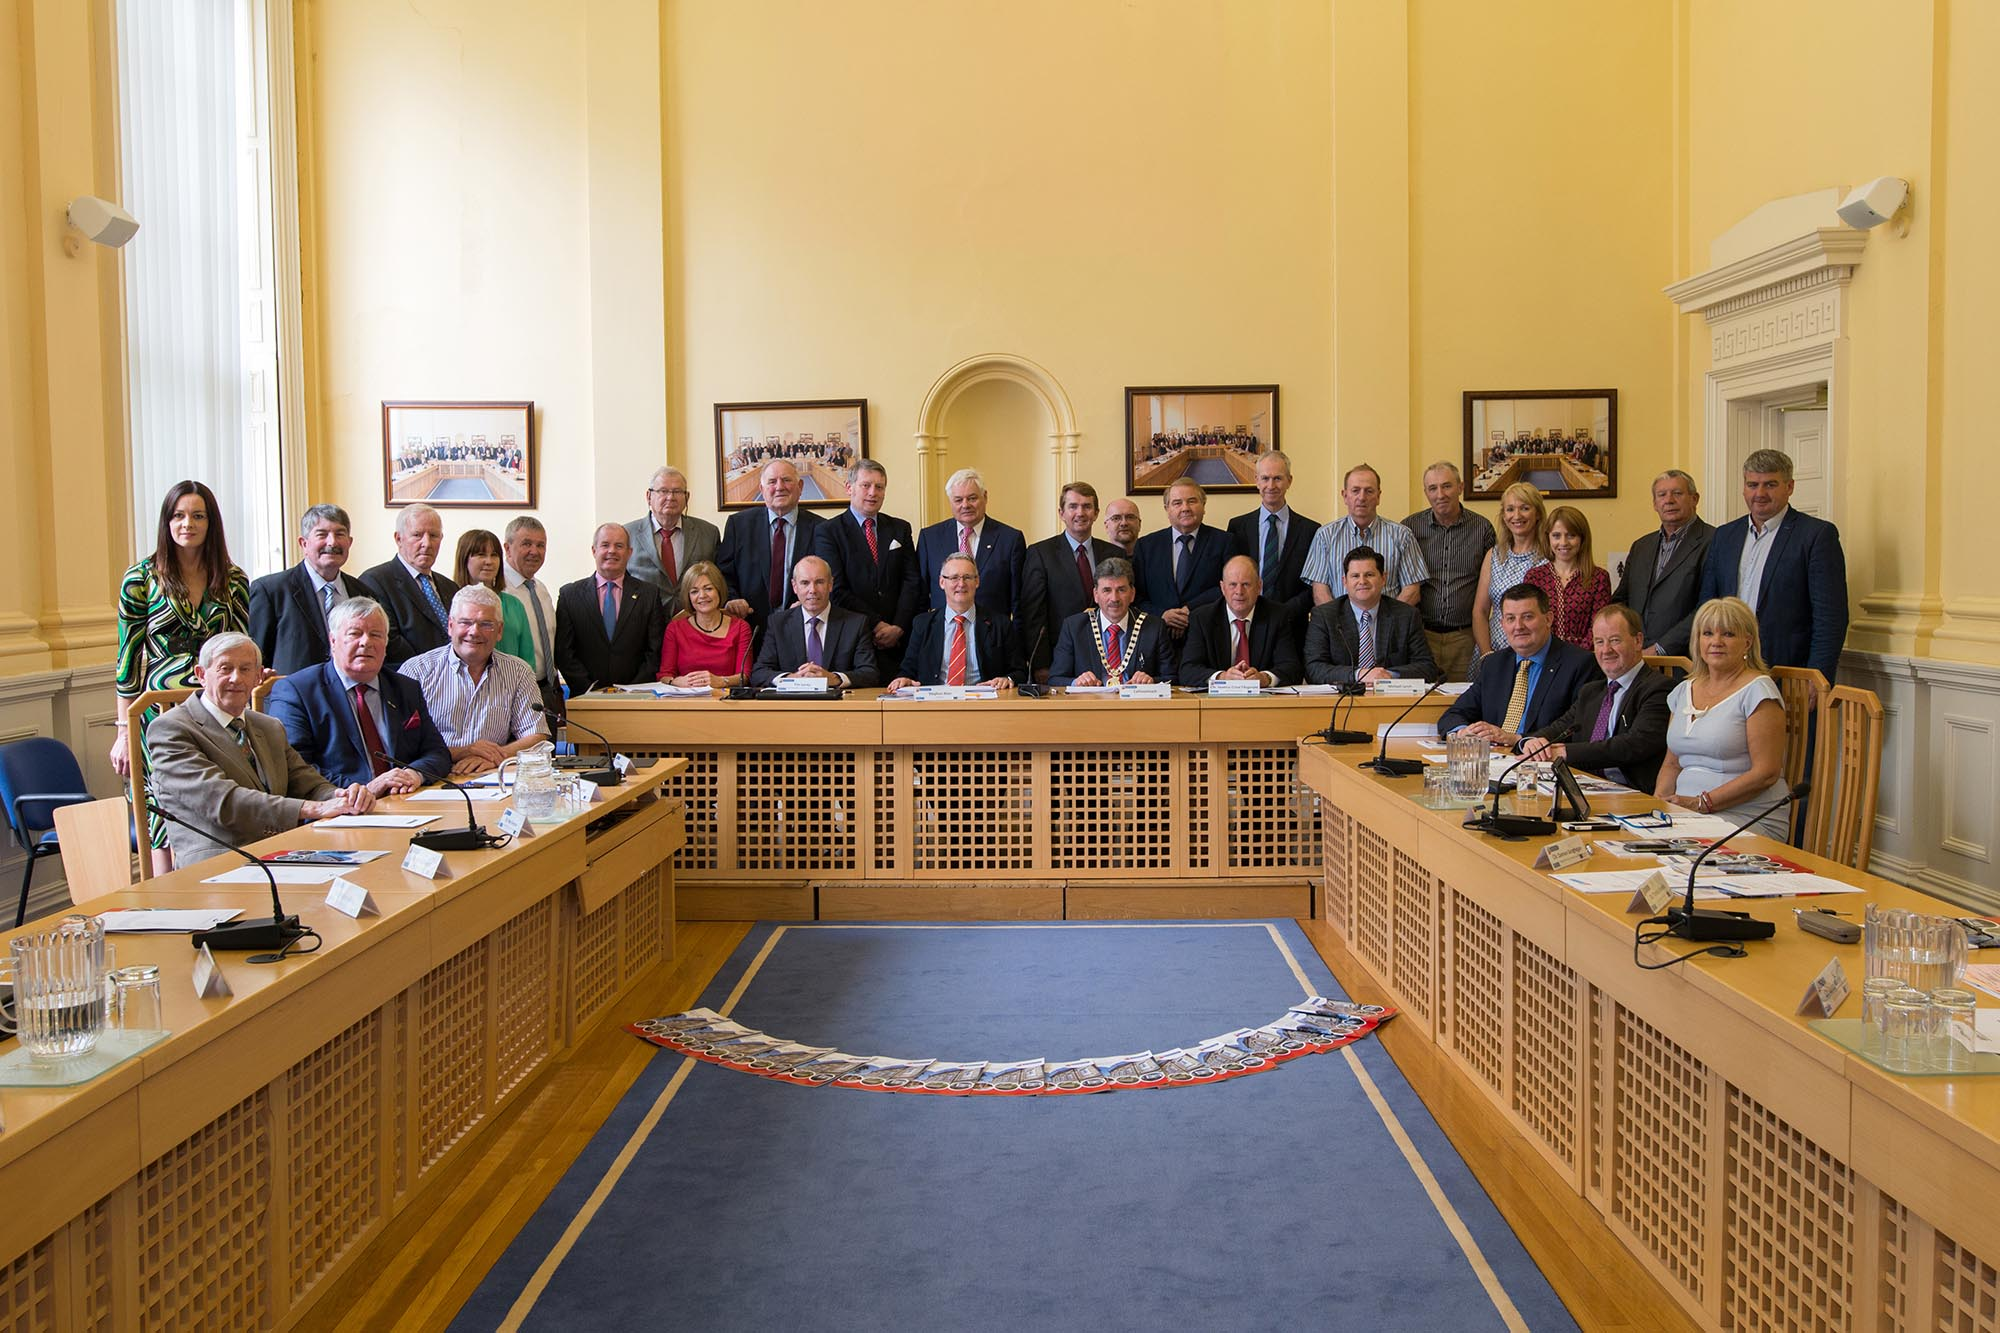 Newly elected Cathaoirleach Cllr. Michael O'Shea with members and staff of the Southern Regional Assembly at the AGM 2016